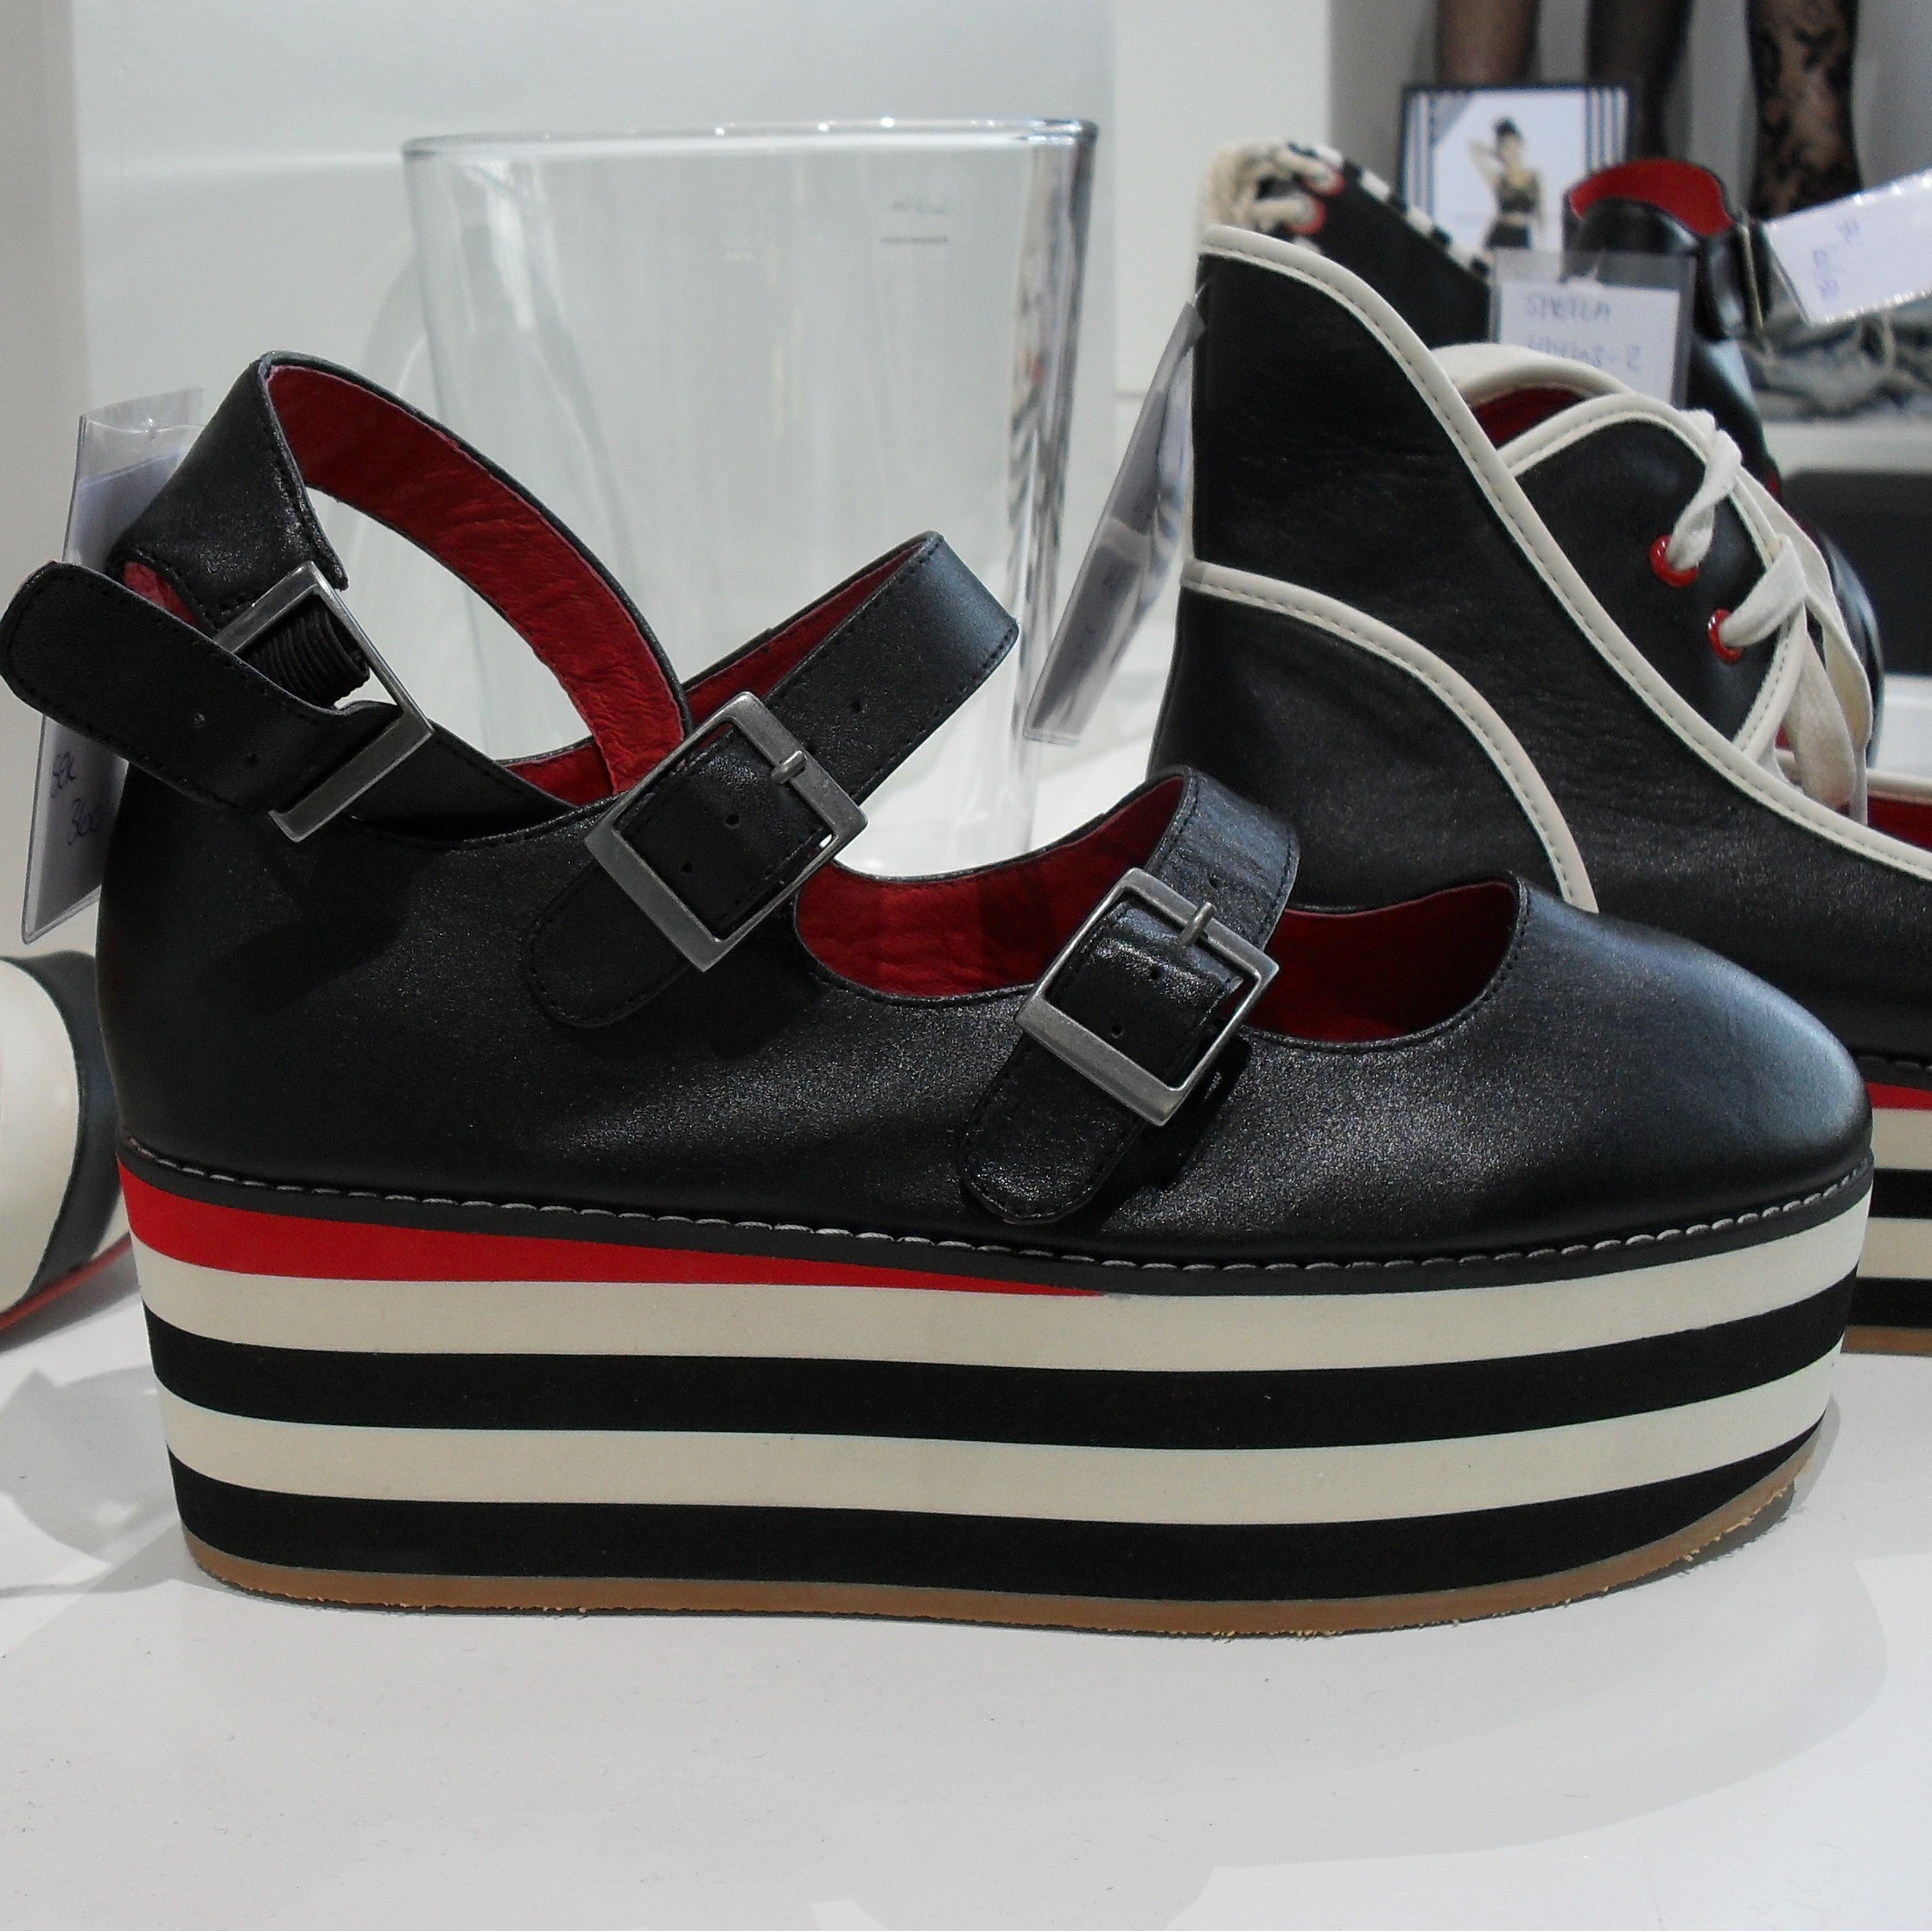 editd-bread-butter-ss13-flatforms-by-mora-mora